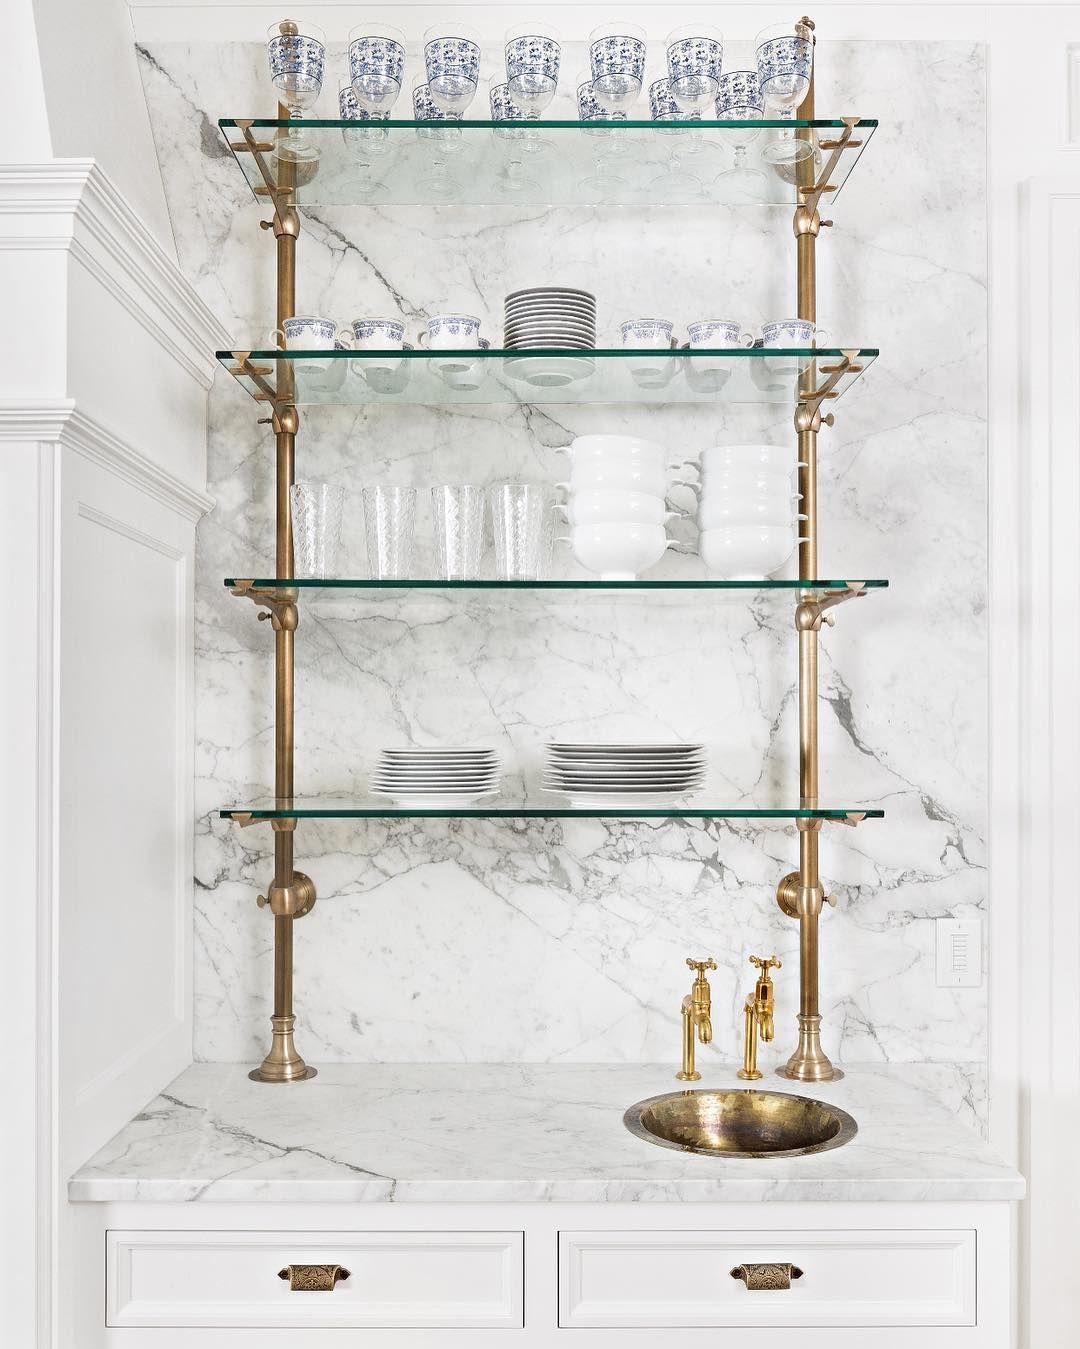 Glass Kitchen Shelf: Pin By Cathy Dougherty On Here's To You! In 2019